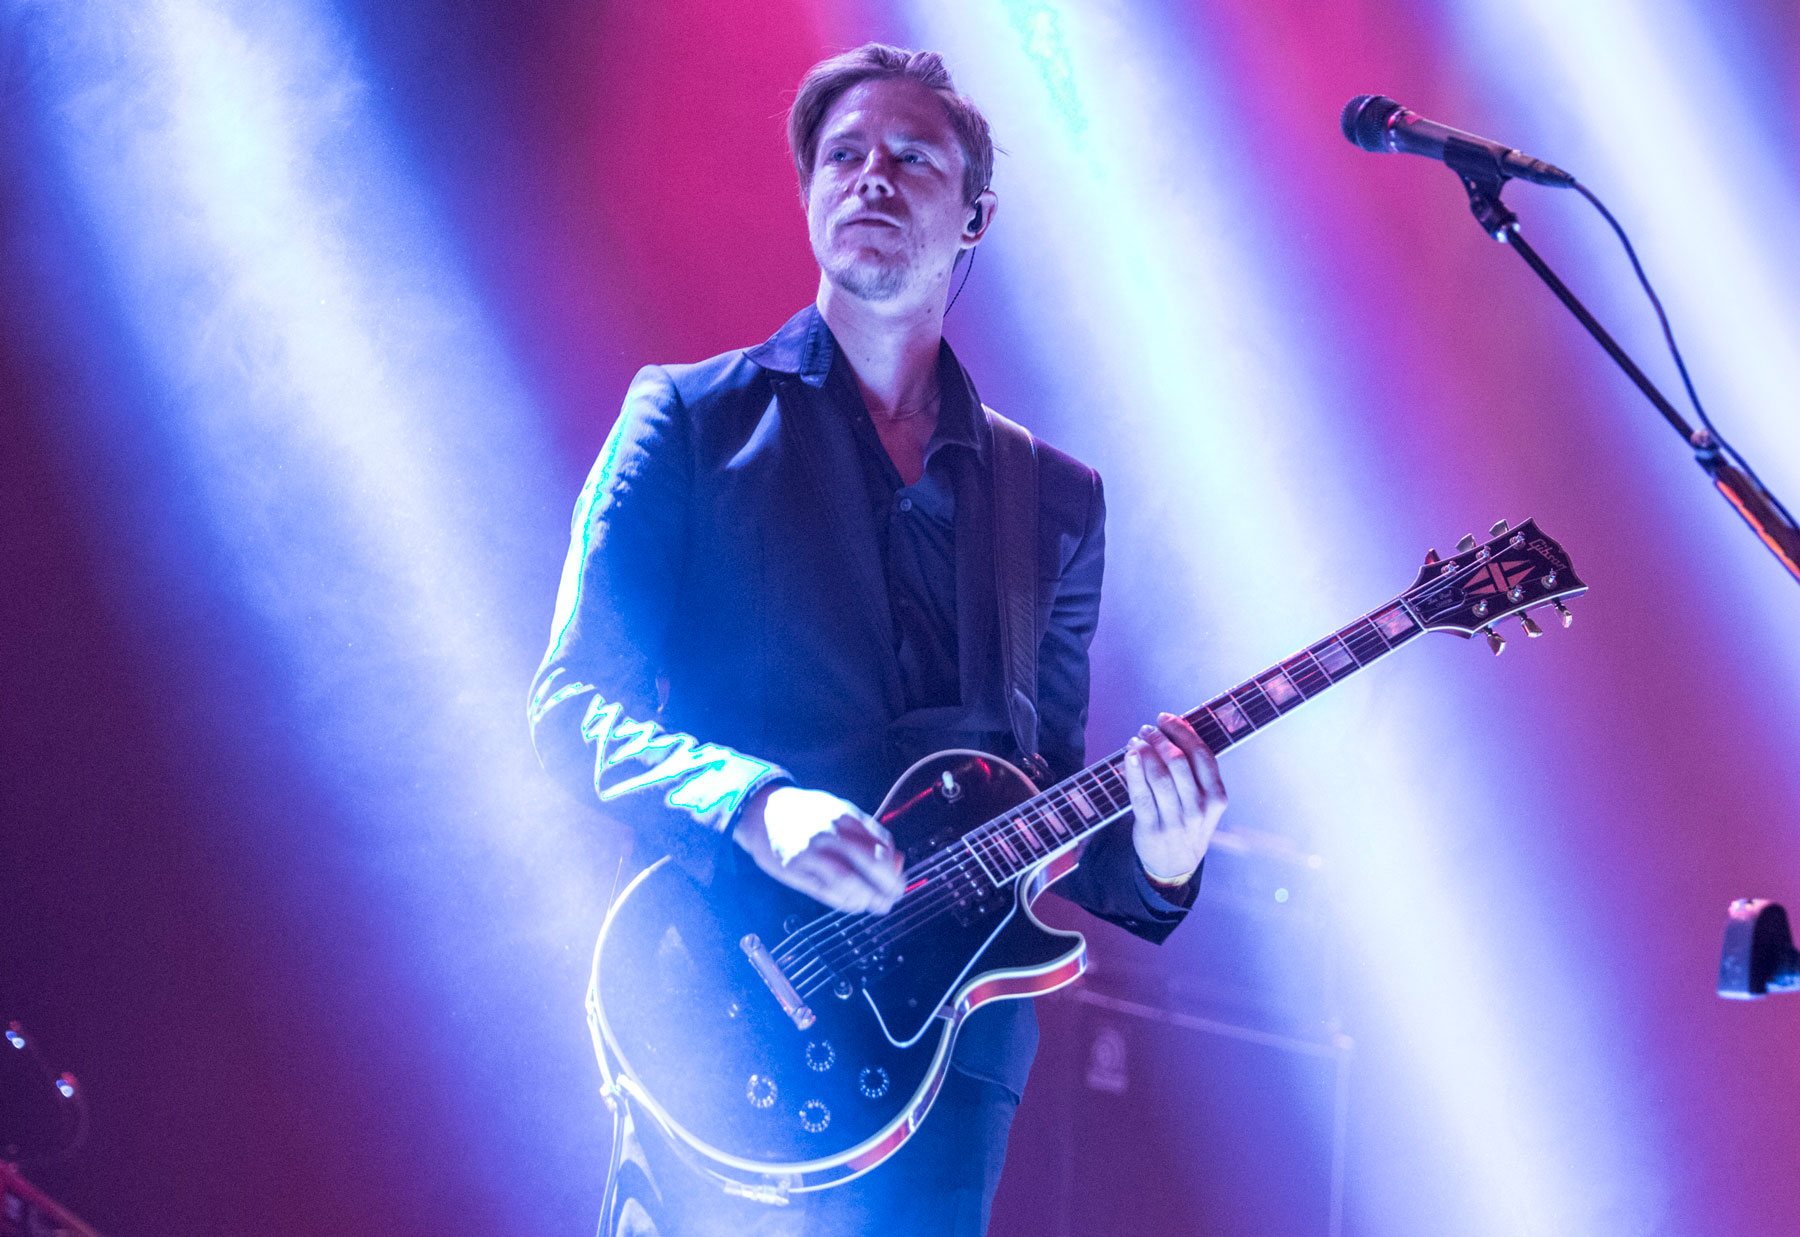 Interpol's Paul Banks Previews 'El Pintor': 'We're a New Band Again'